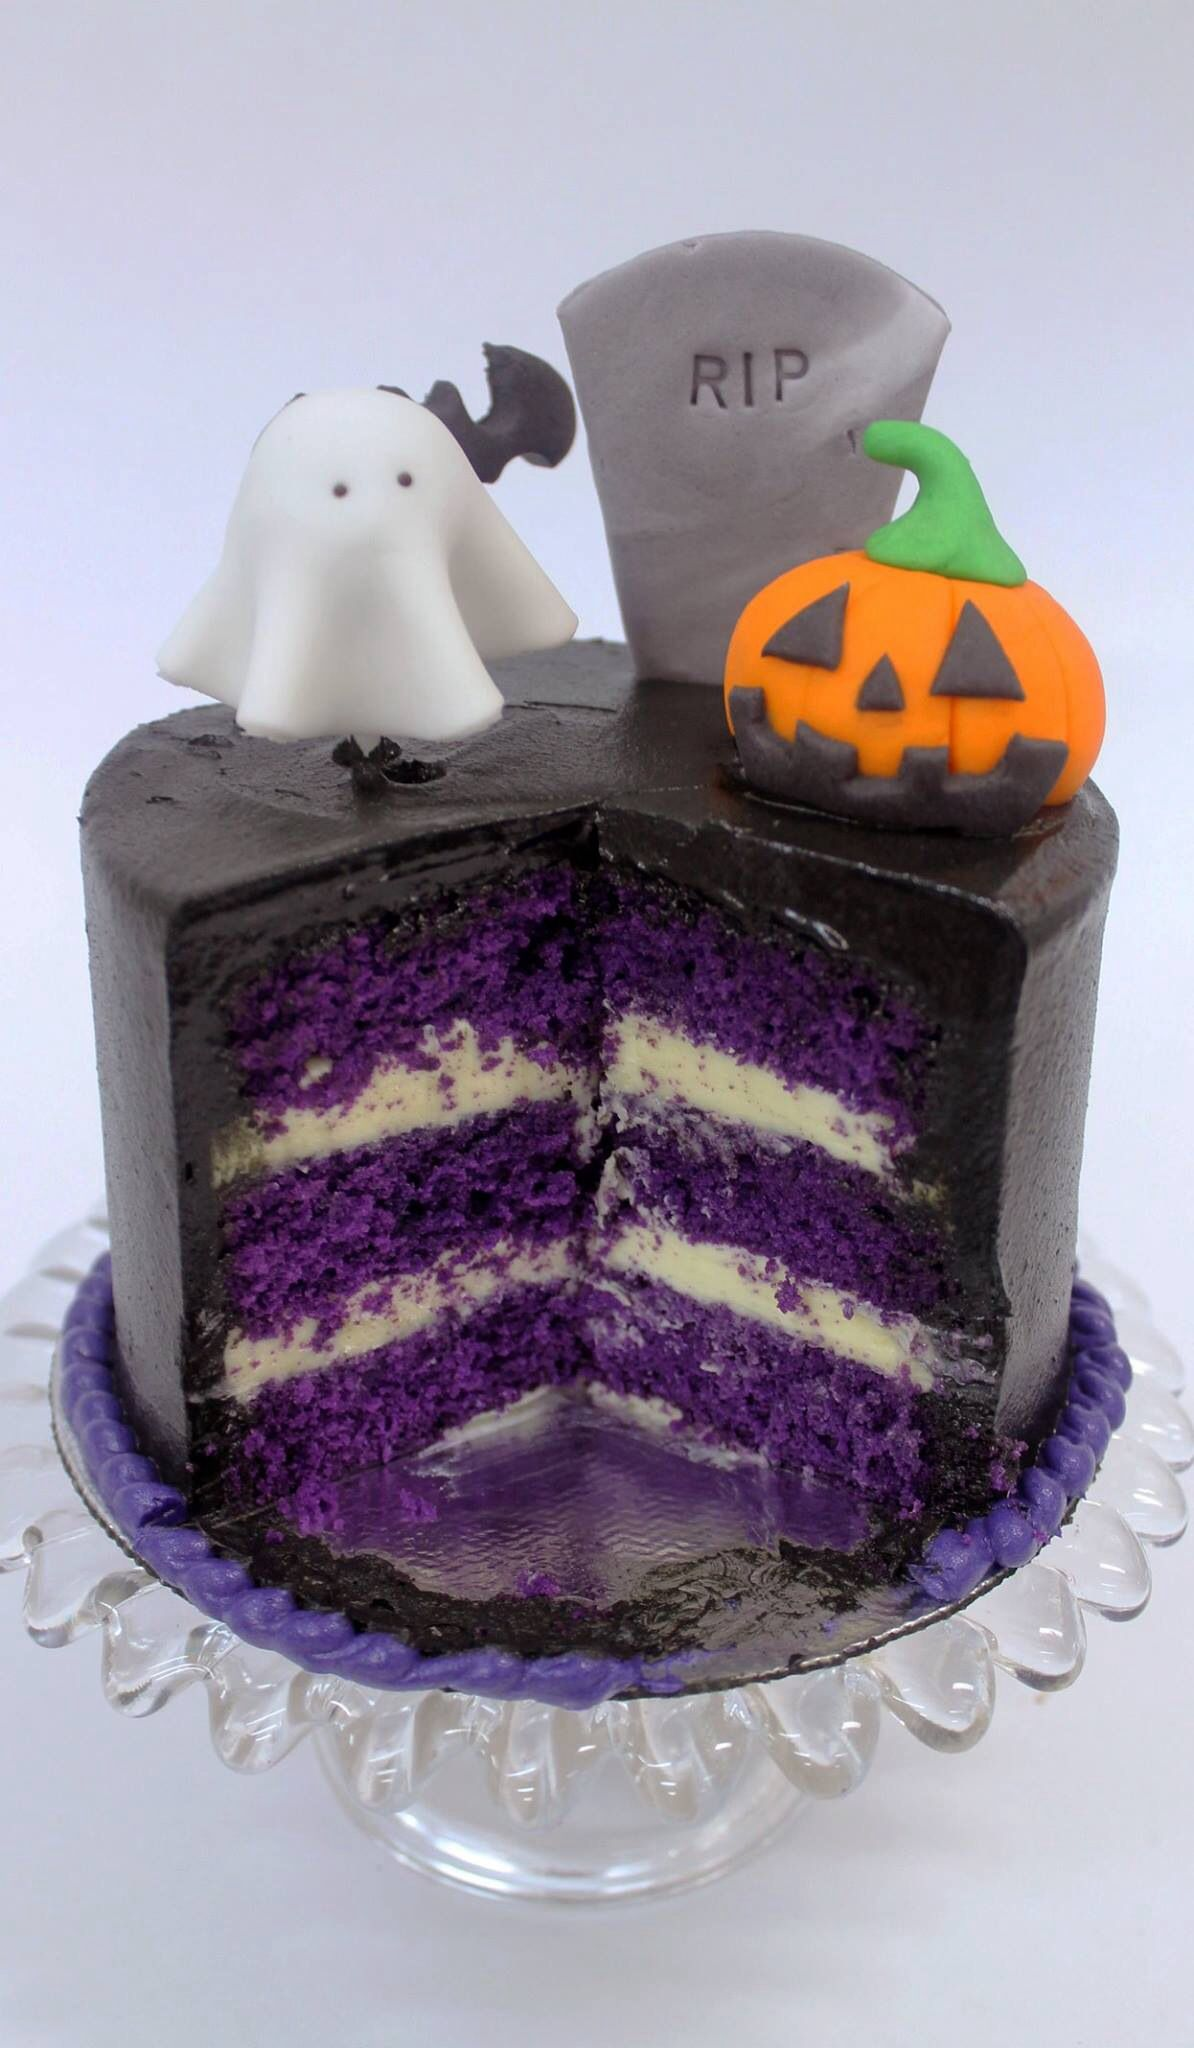 Pin by Marilene Almeida on Yammy yammy Pinterest - Halloween Cake Decorating Ideas